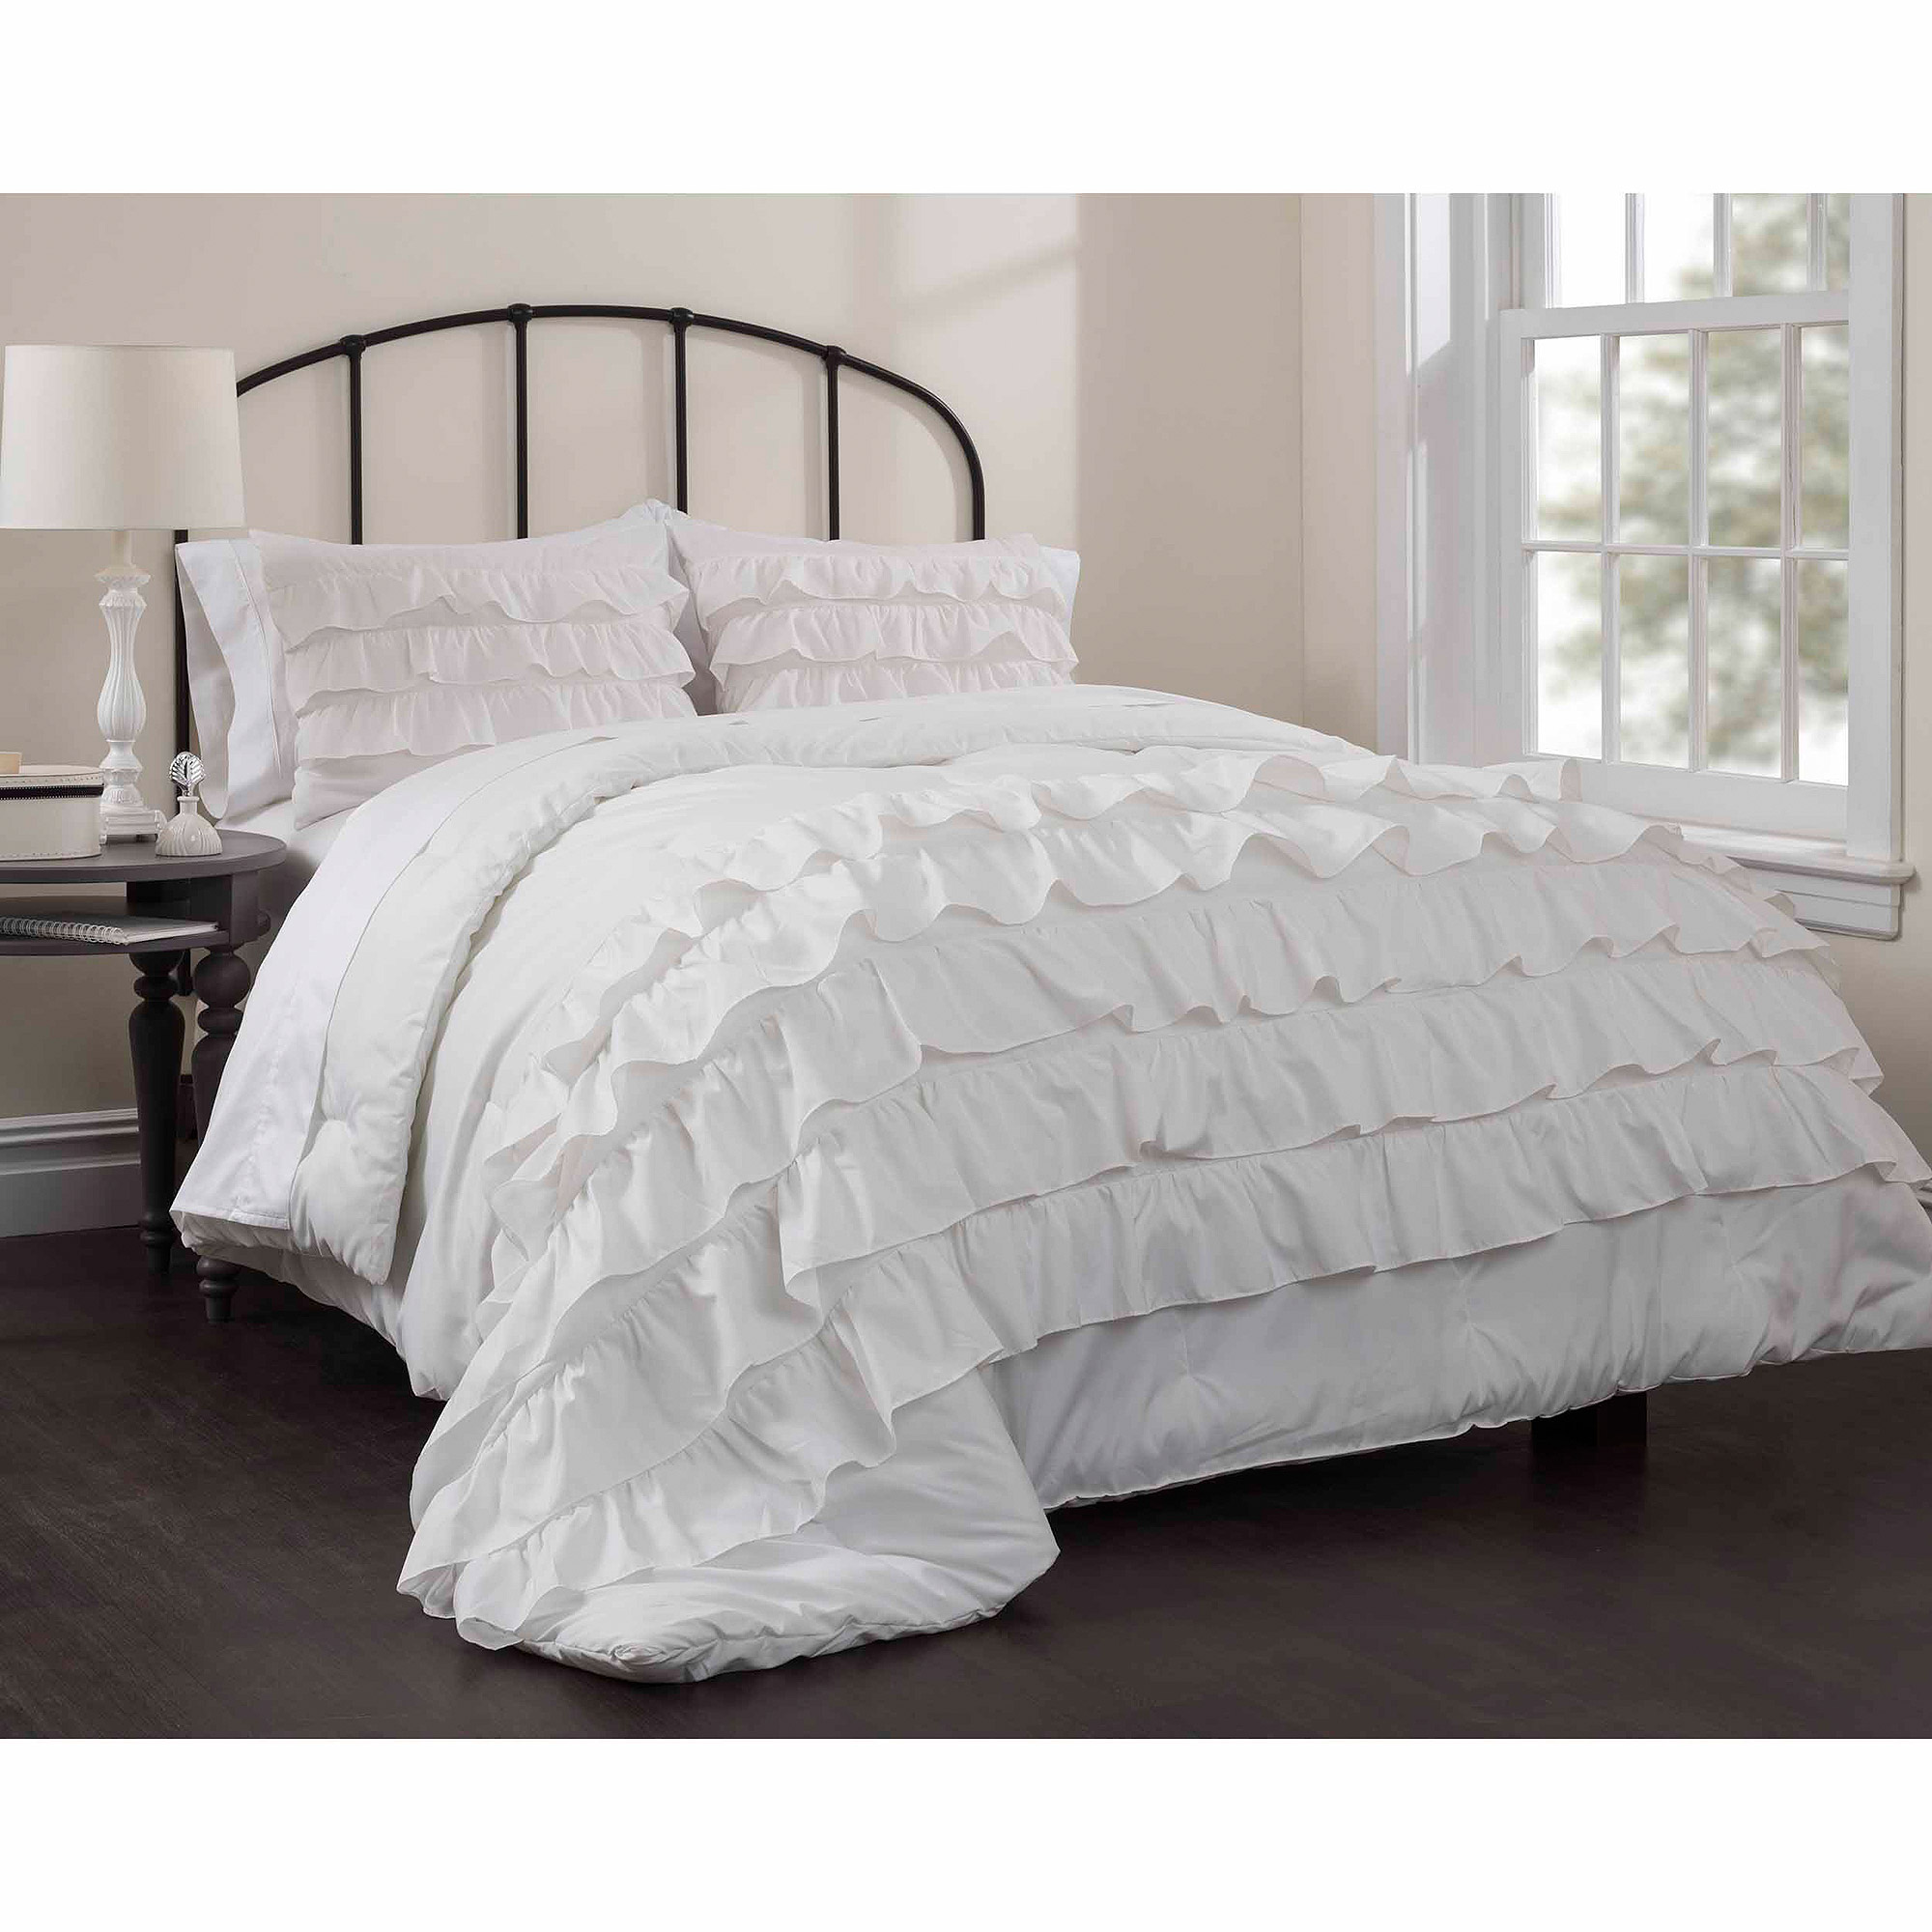 Latitude Ruby Ruffle Bedding forter Set Walmart